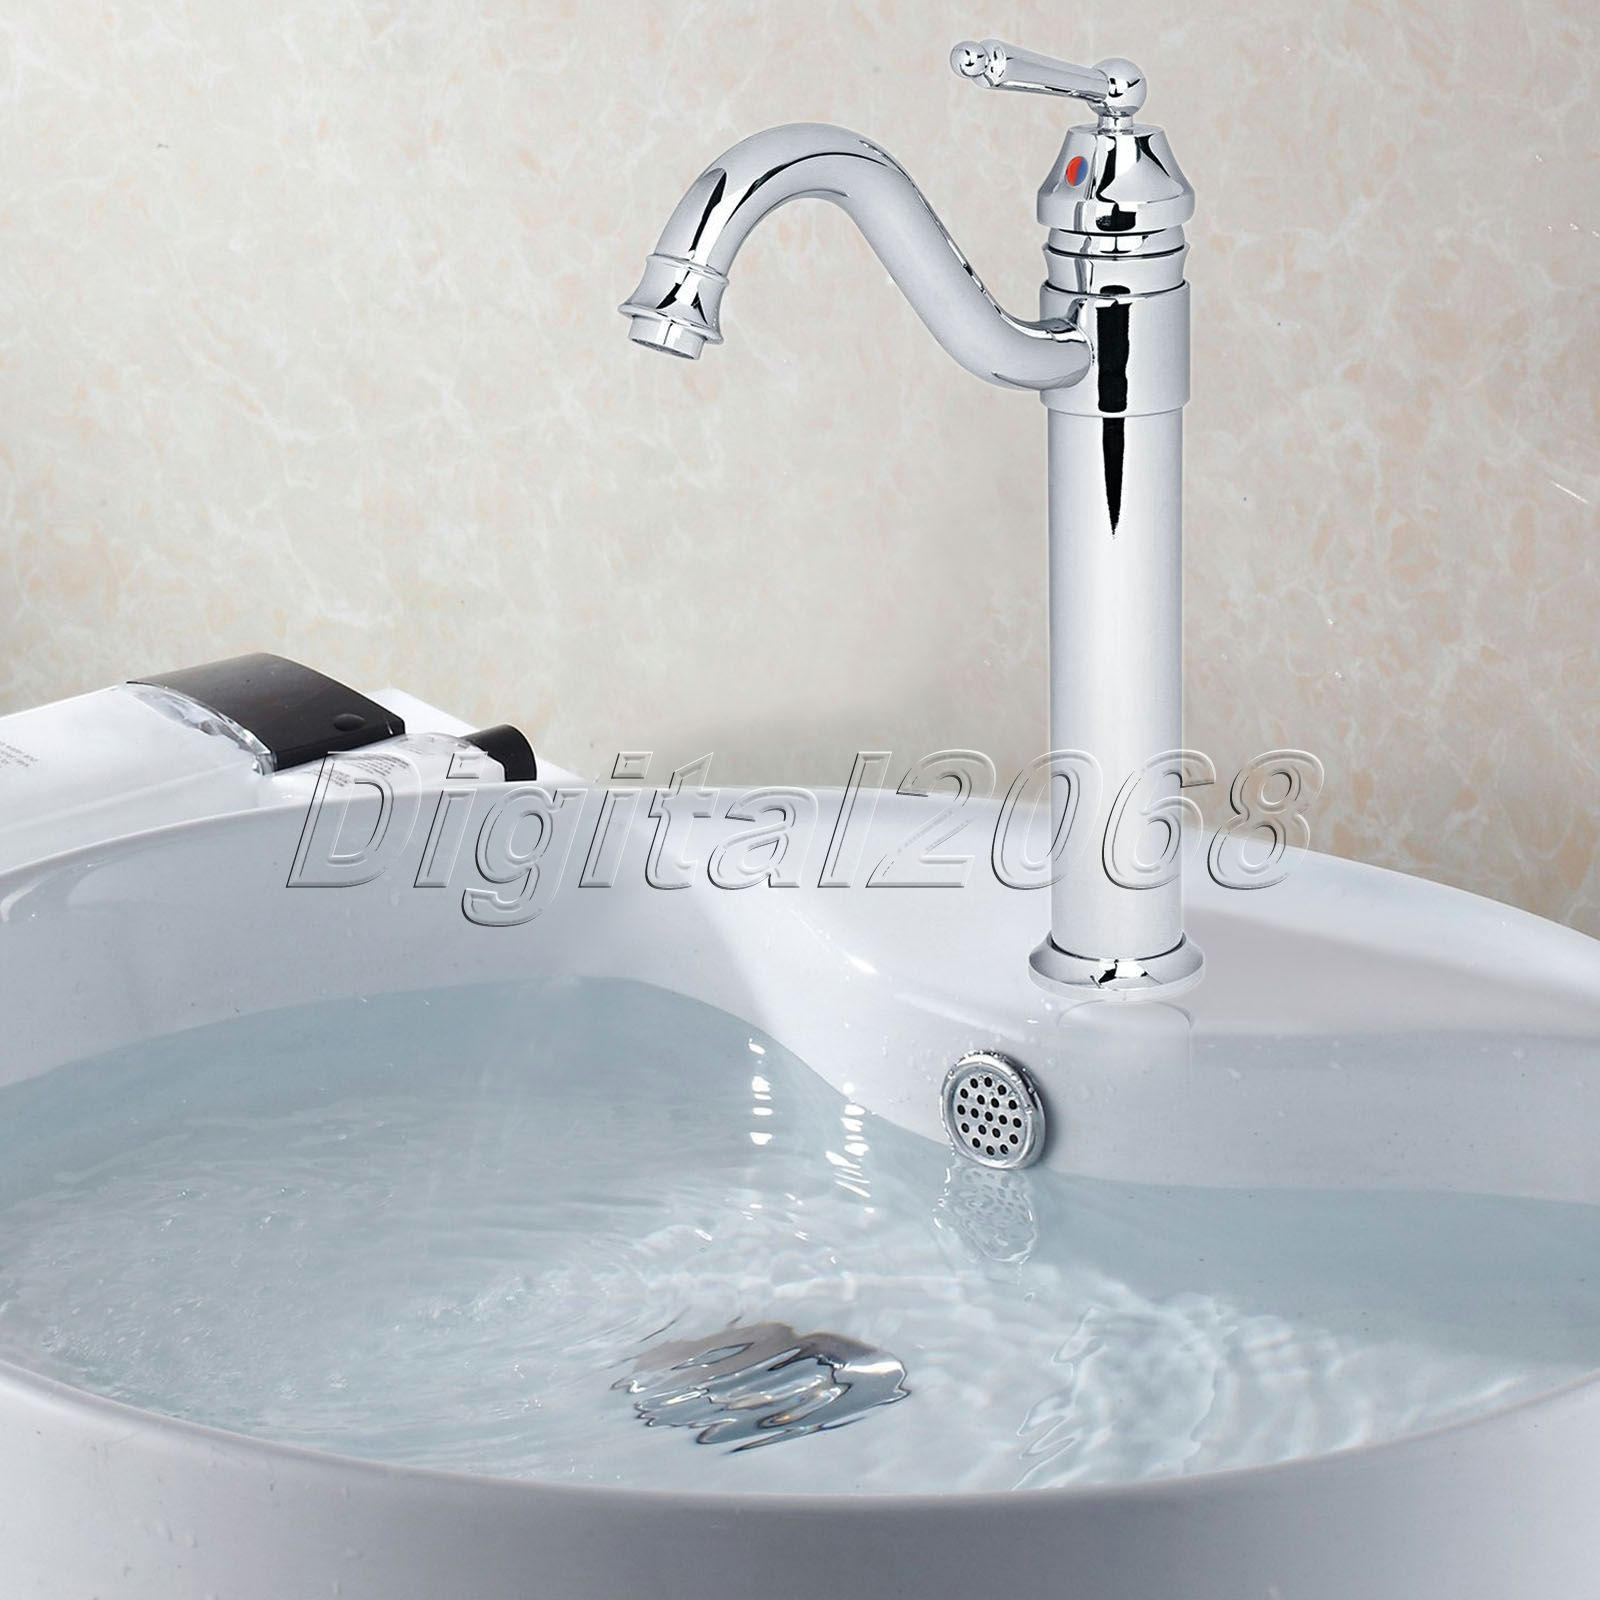 Brass Chrome Bathroom Faucet Single Handle Hole Lavatory Vessel Sink Cold And Hot Water Mixer